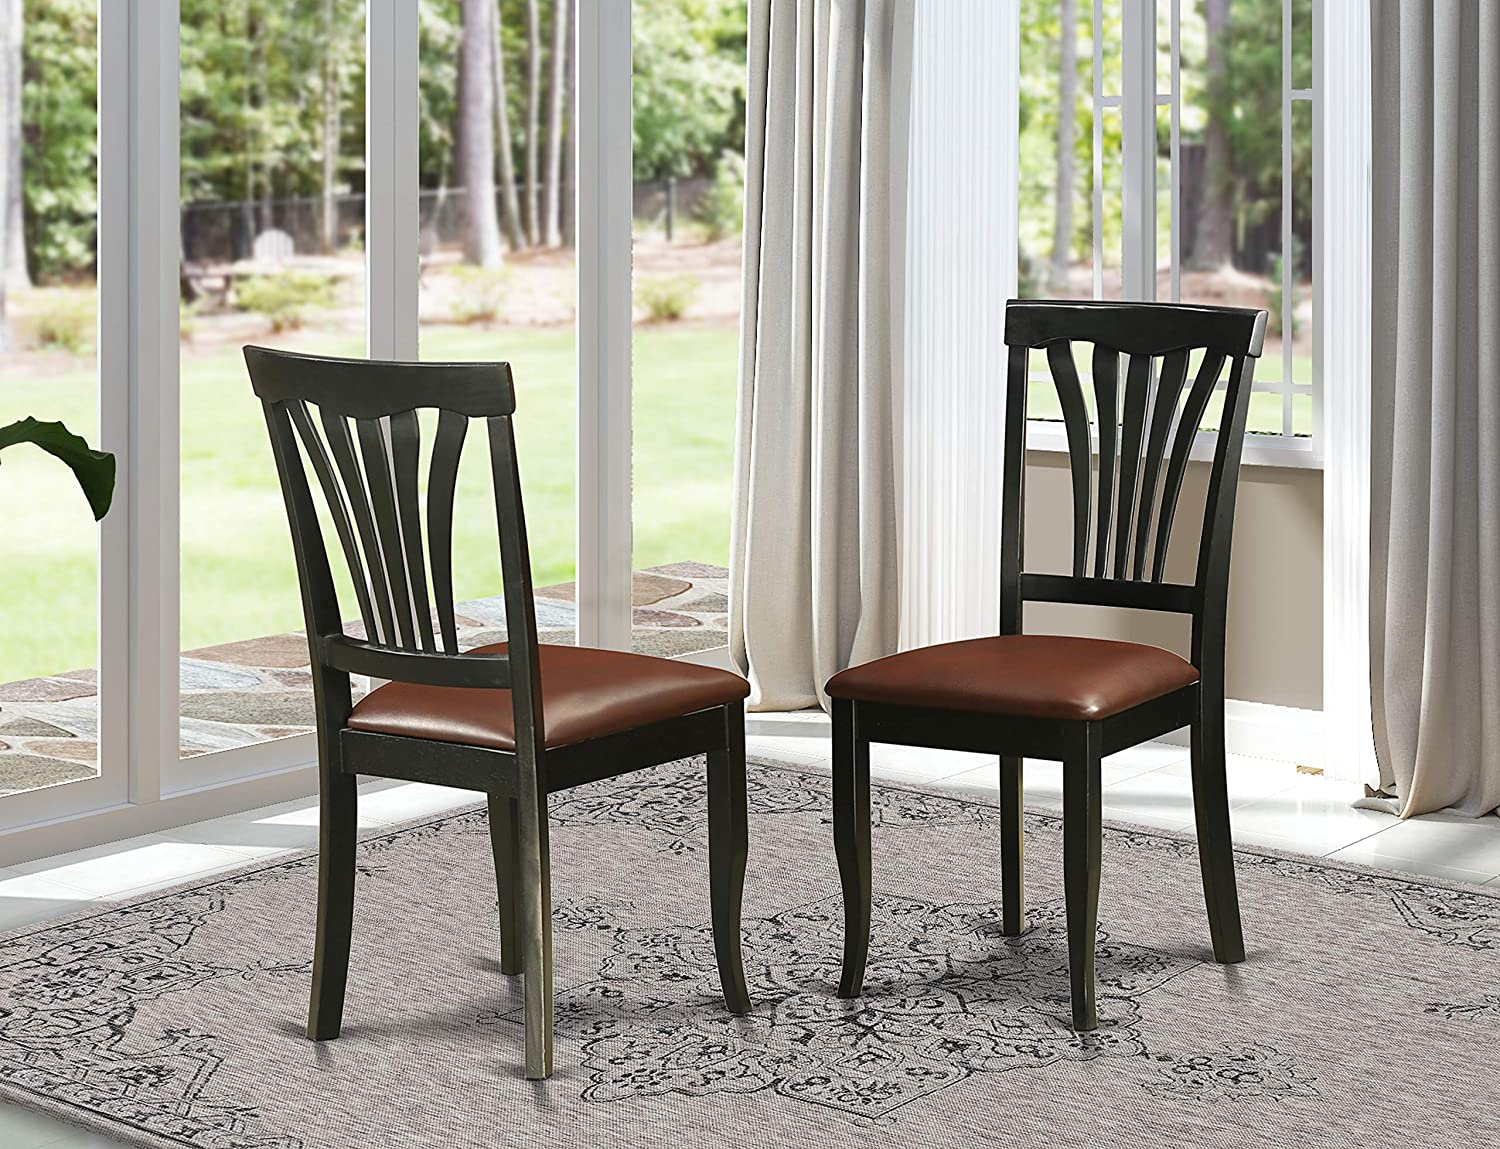 Avon Chair for dining room With Faux Leather Seat - BlackFinish